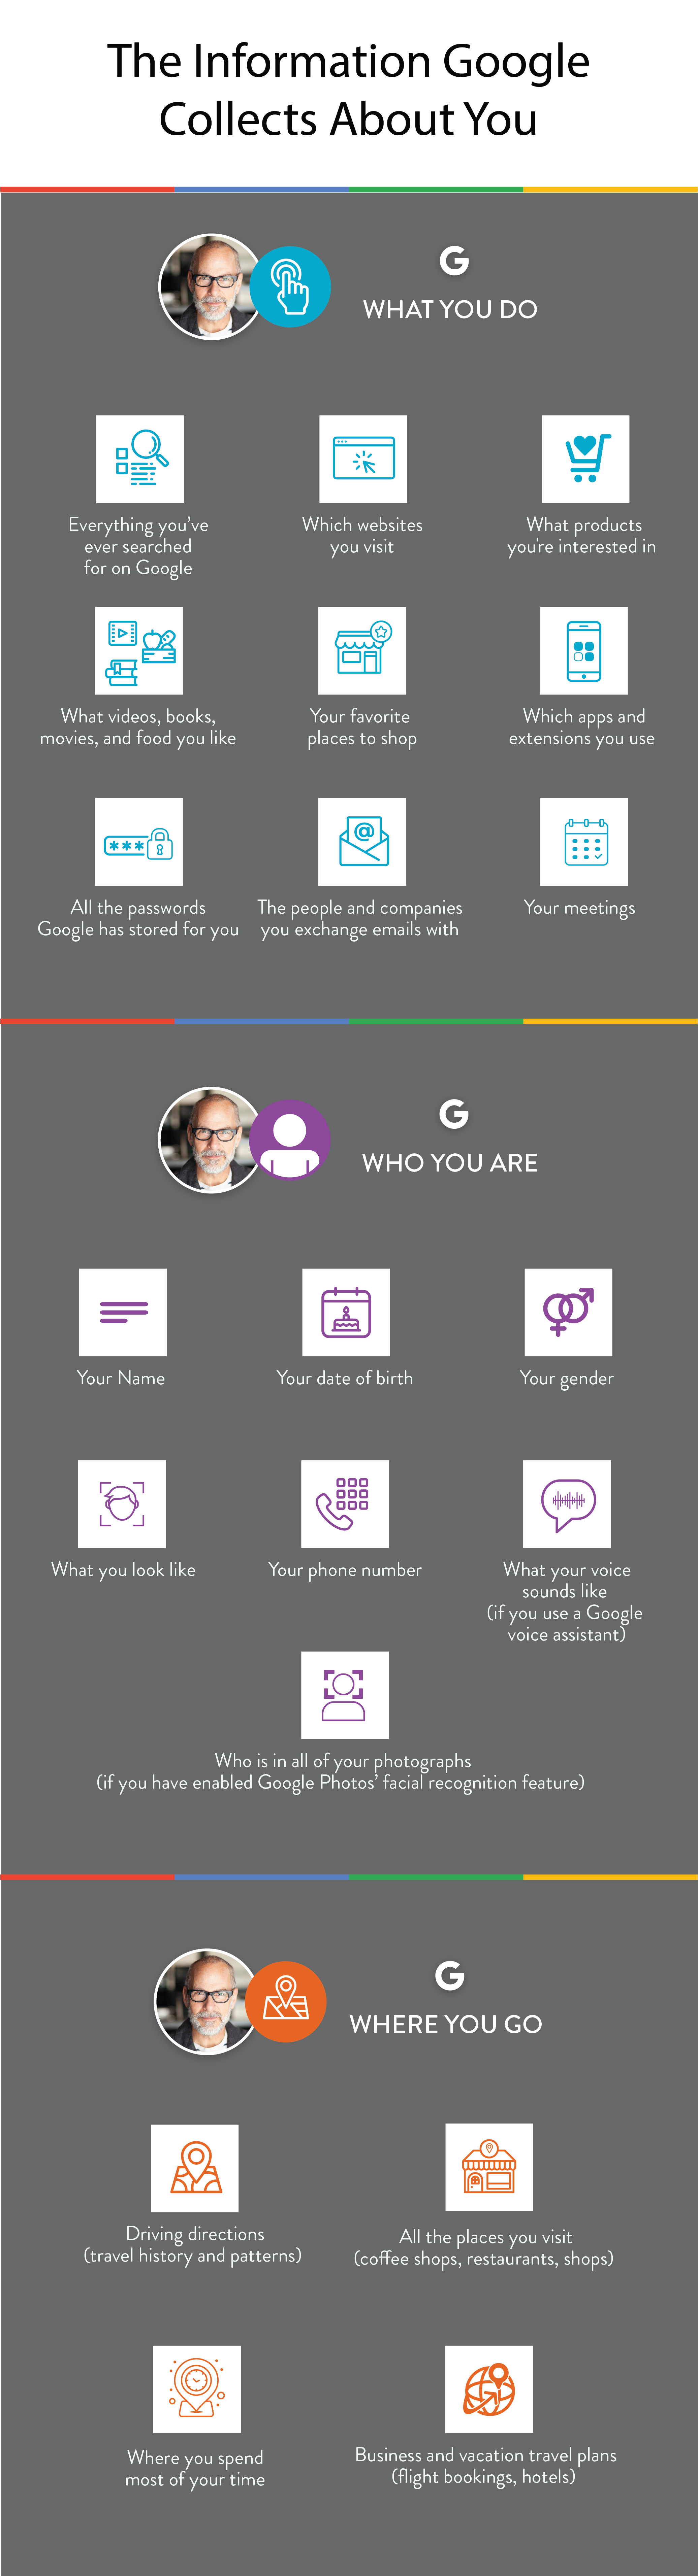 infographic: what info google collects